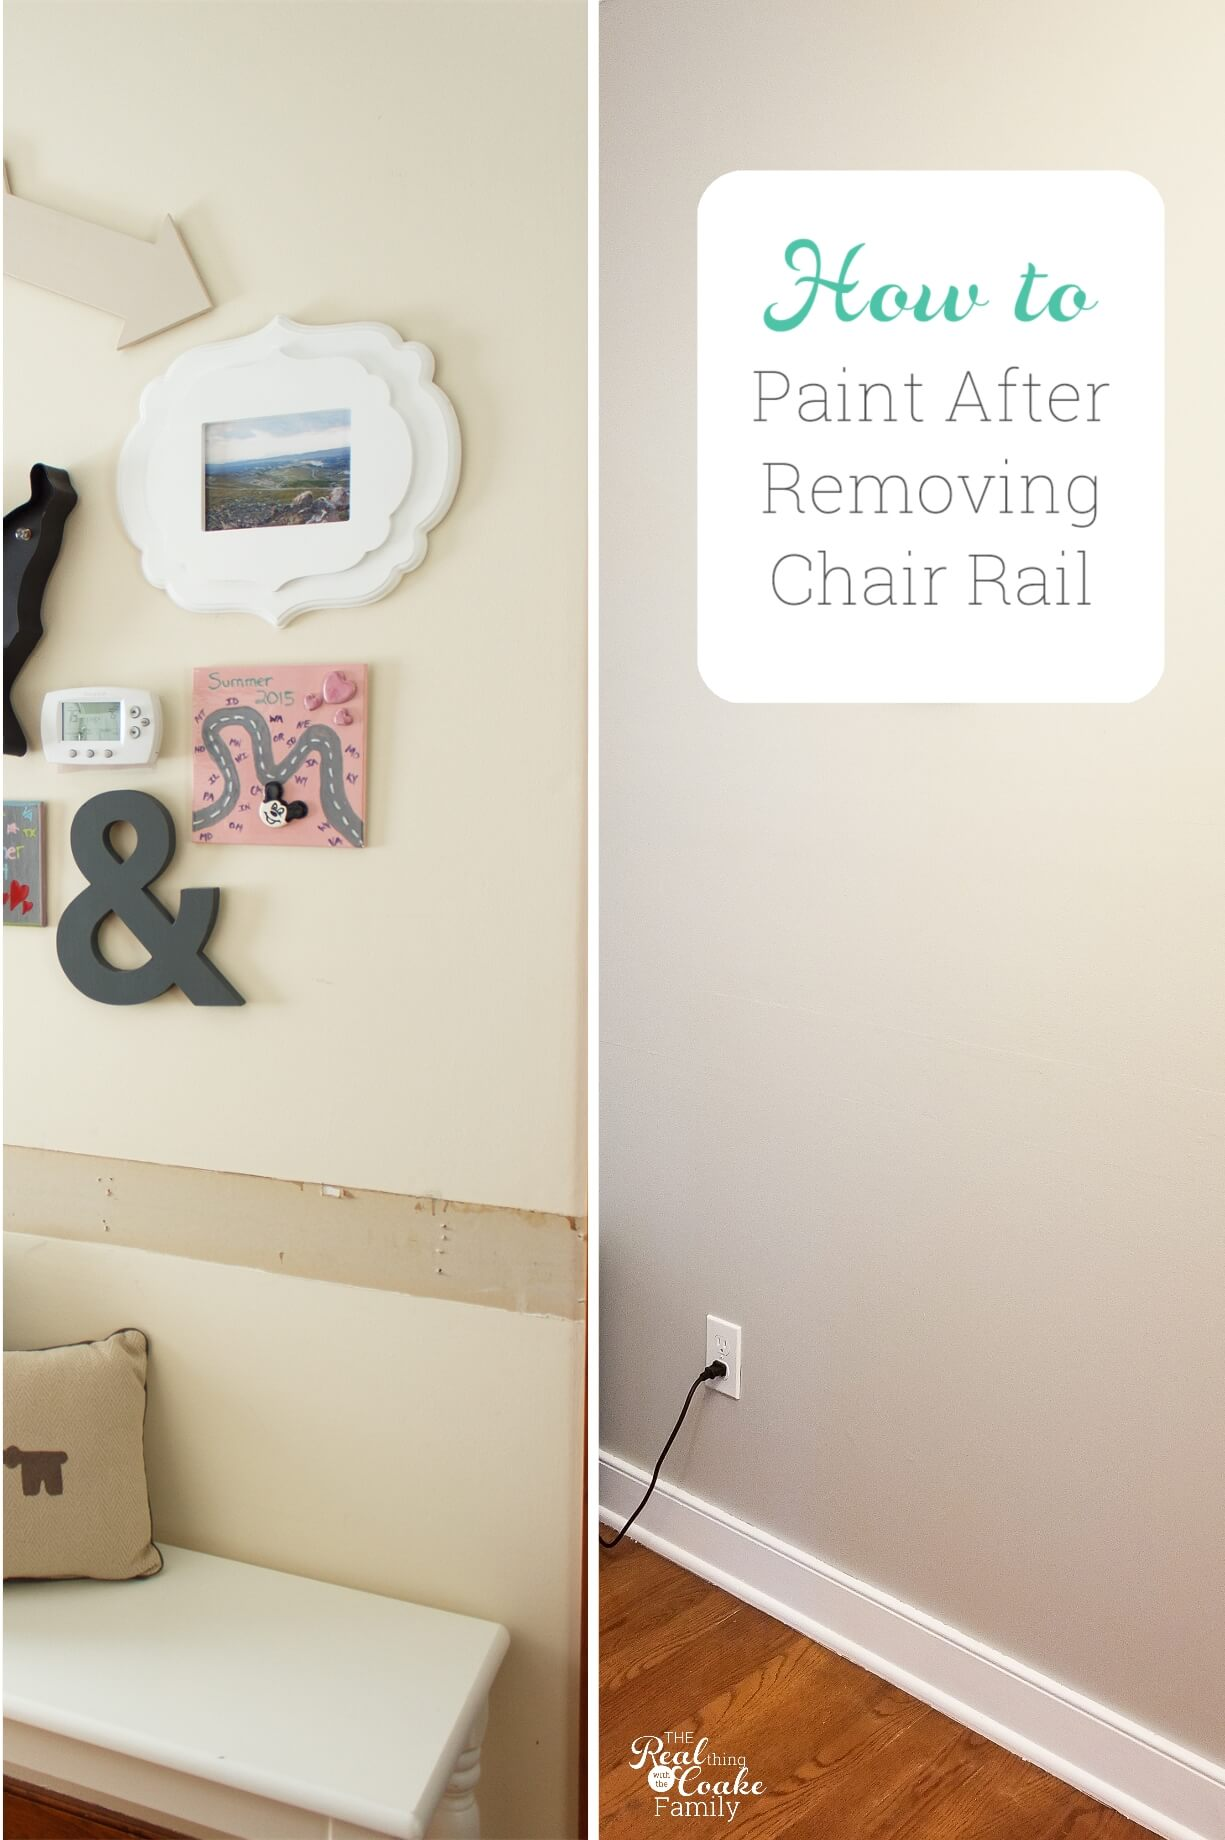 How To Paint After Removing Chair Rail The Real Thing With Coake Family